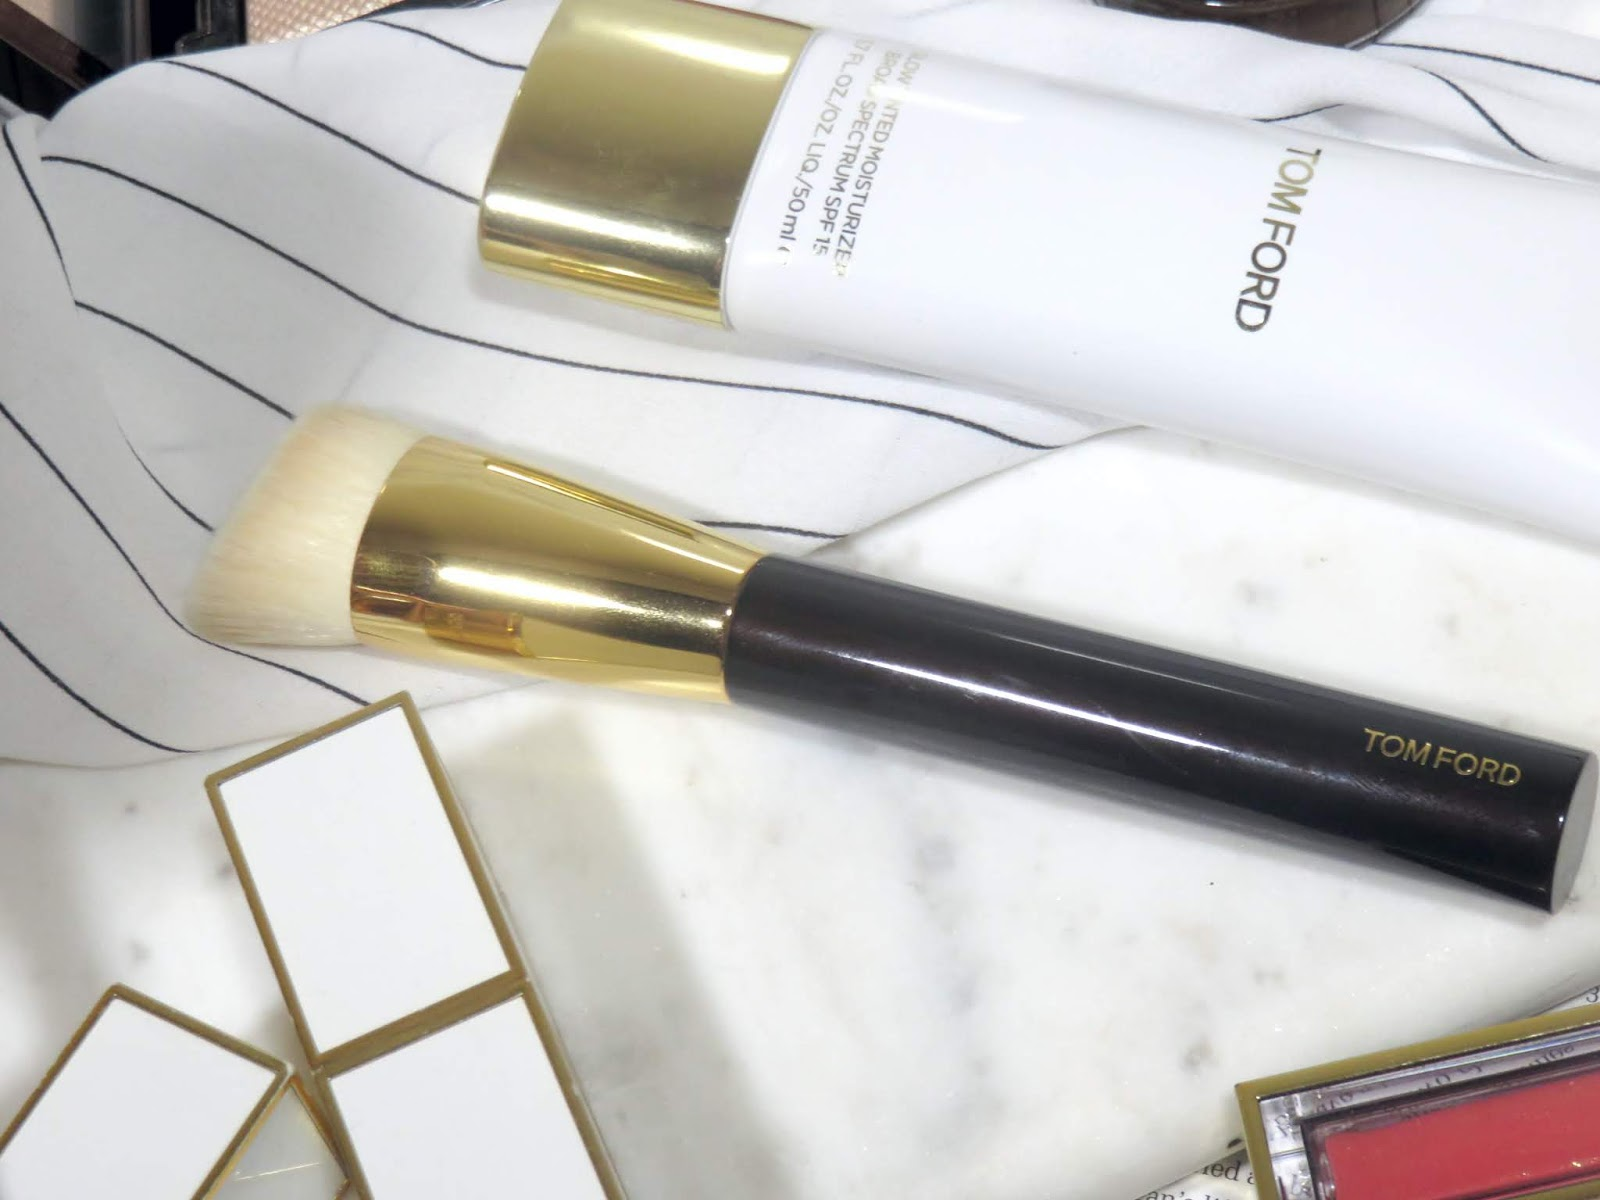 Tom Ford Shade and Illuminate Foundation Brush 2.5 Review